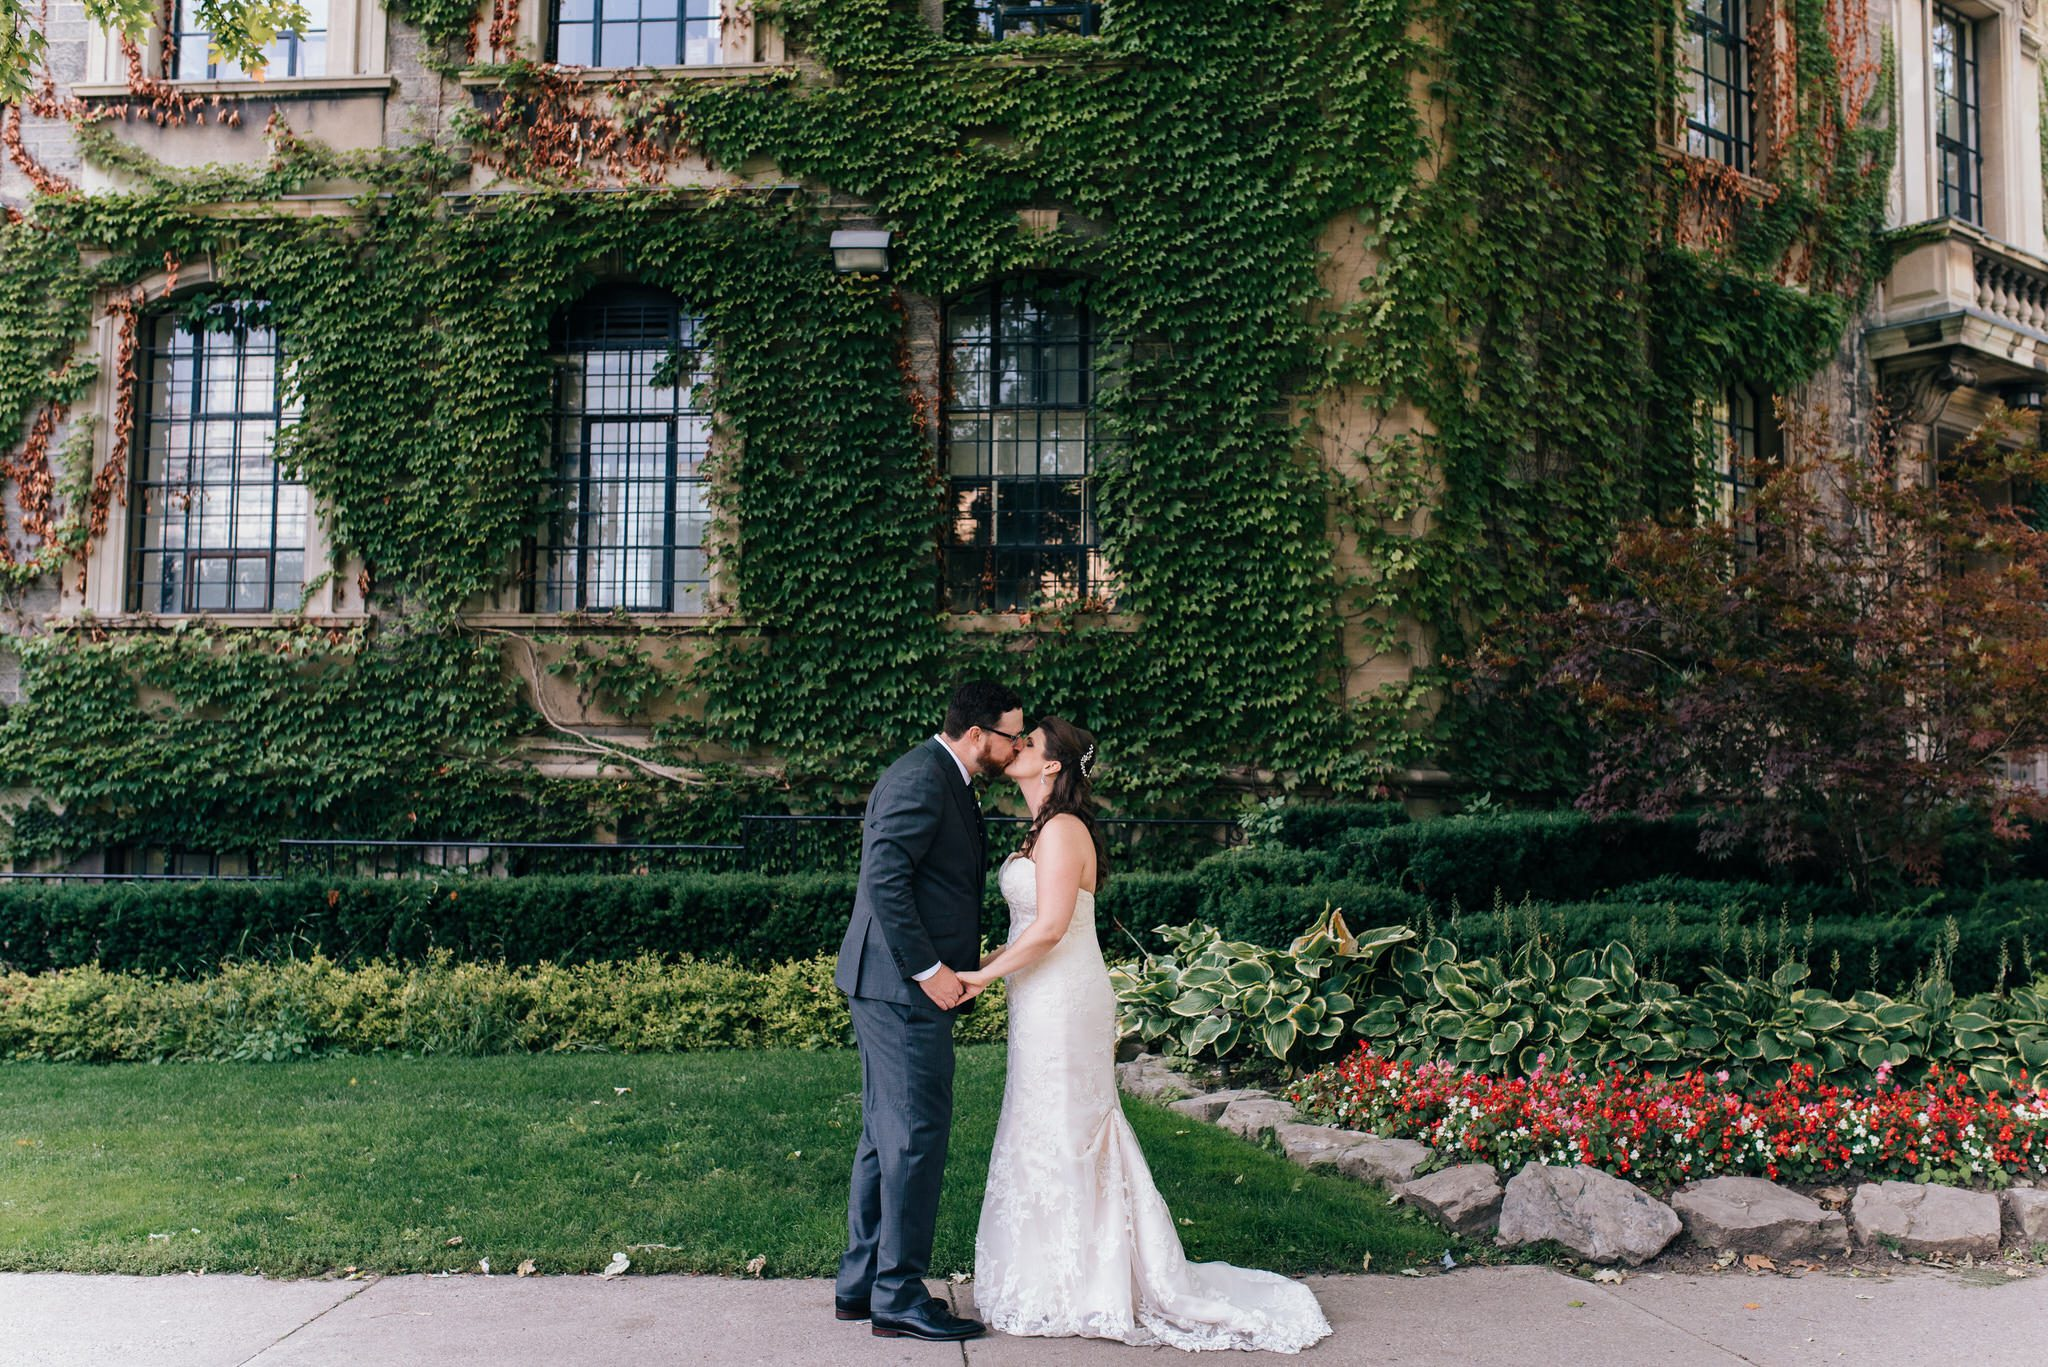 The bride and groom kiss in front of an ivy covered University of Toronto building.